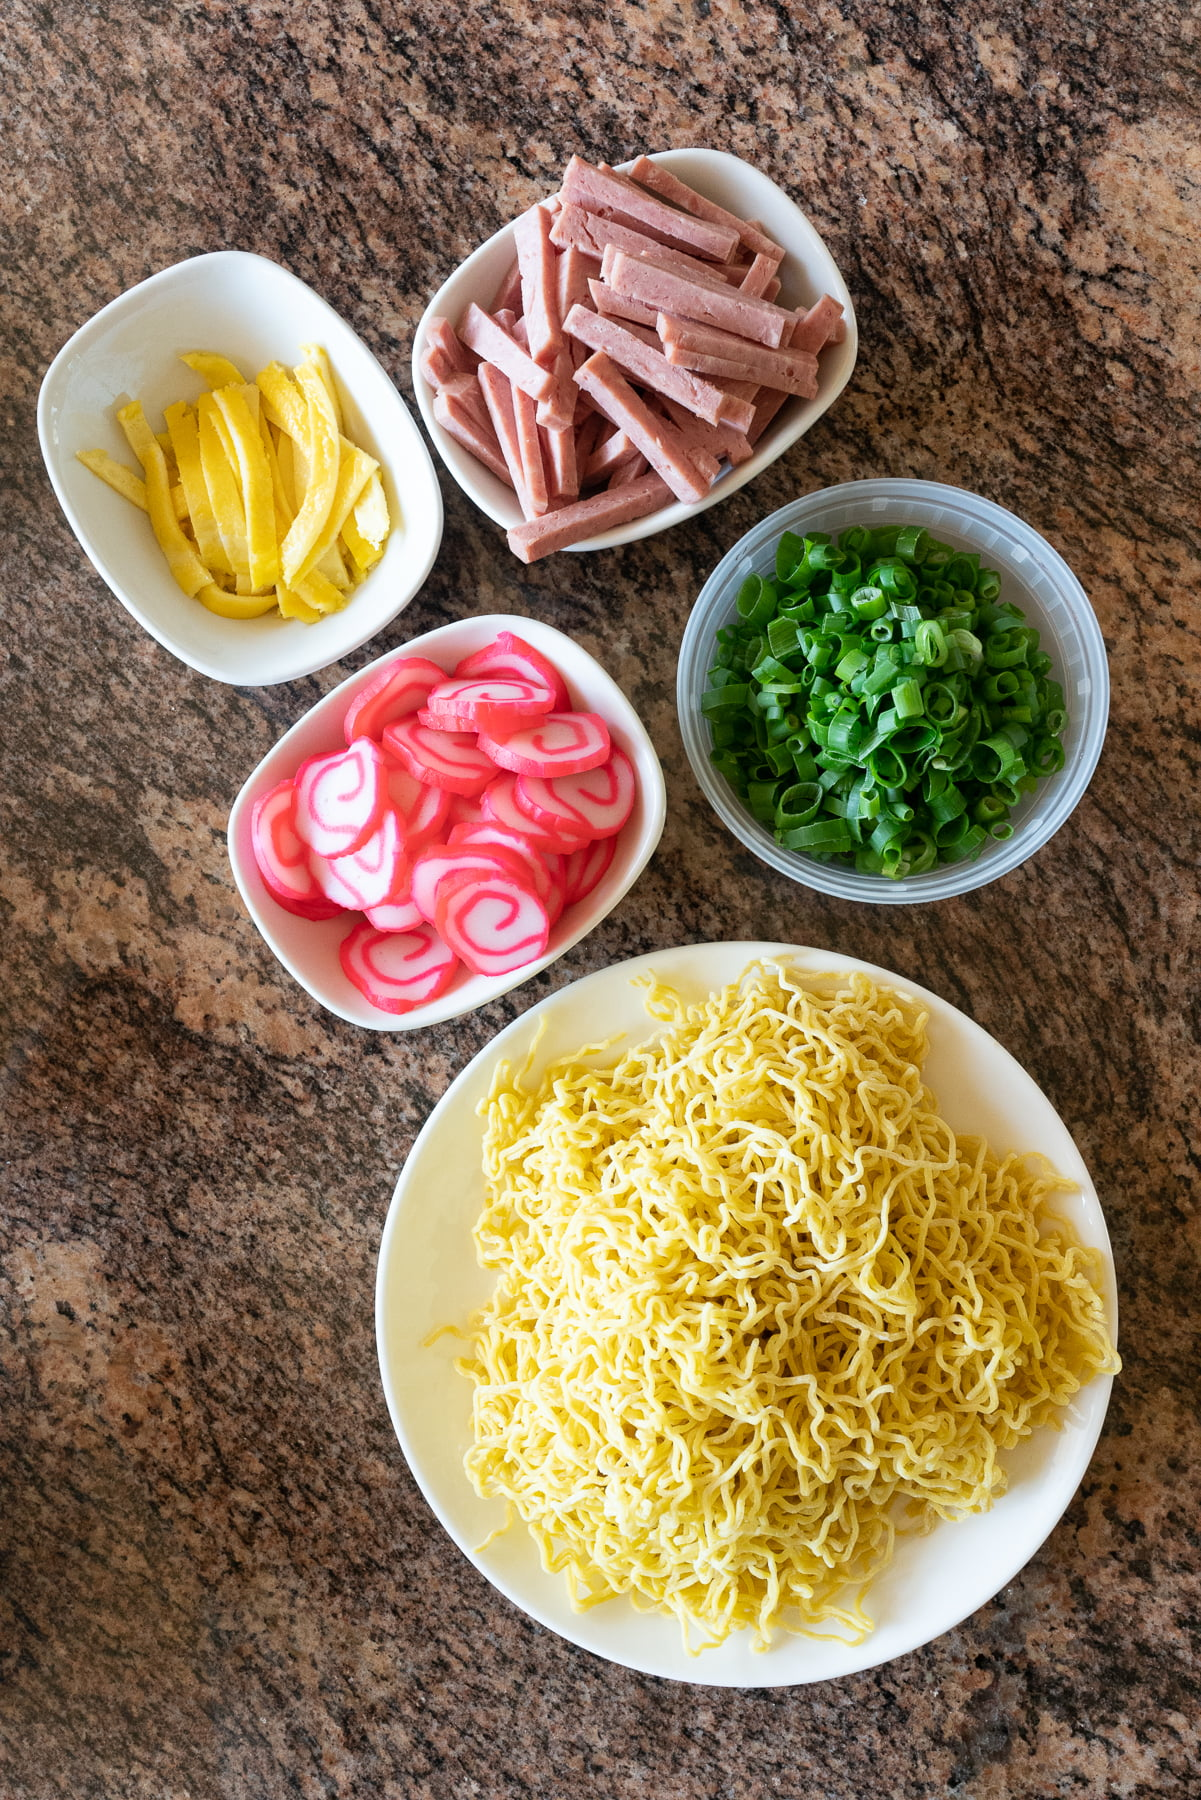 Fresh saimin noodles and little bowls with popular saimin toppings.